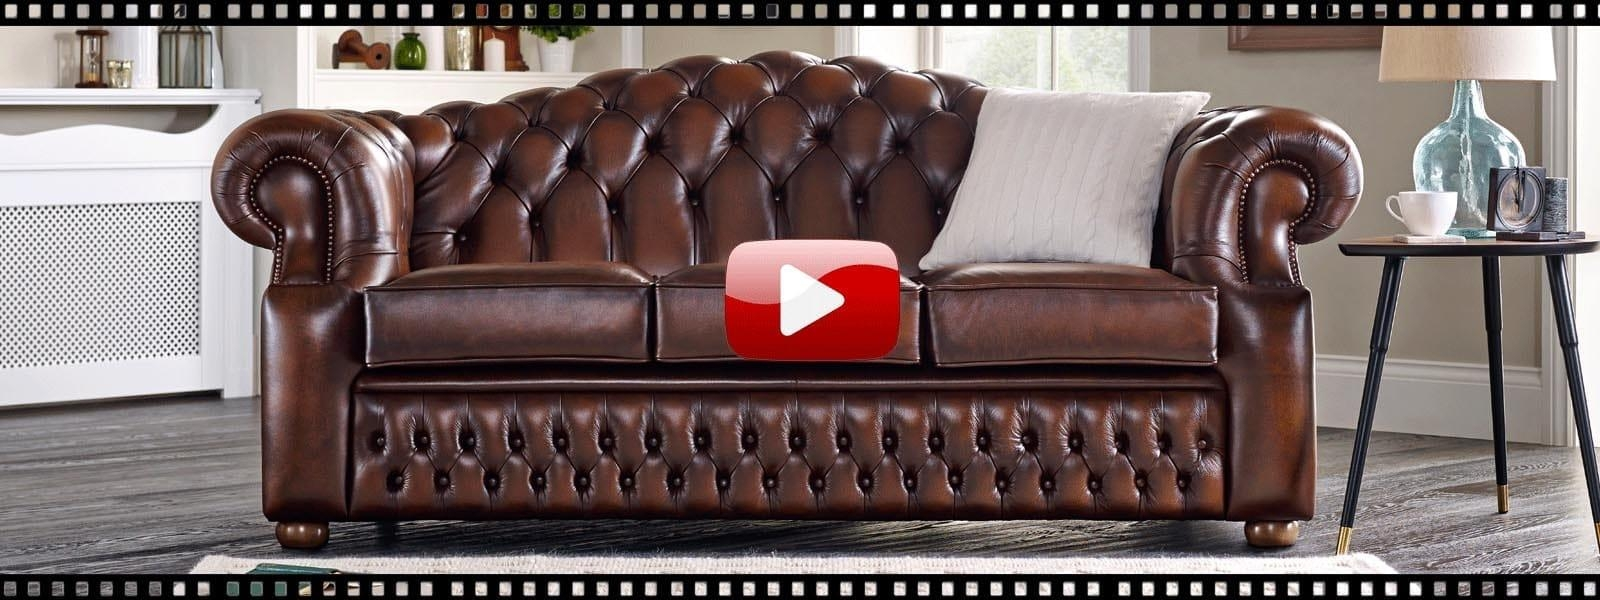 Oxford 3 Seater Sofa – From Sofassaxon Uk With Oxford Sofas (View 13 of 20)